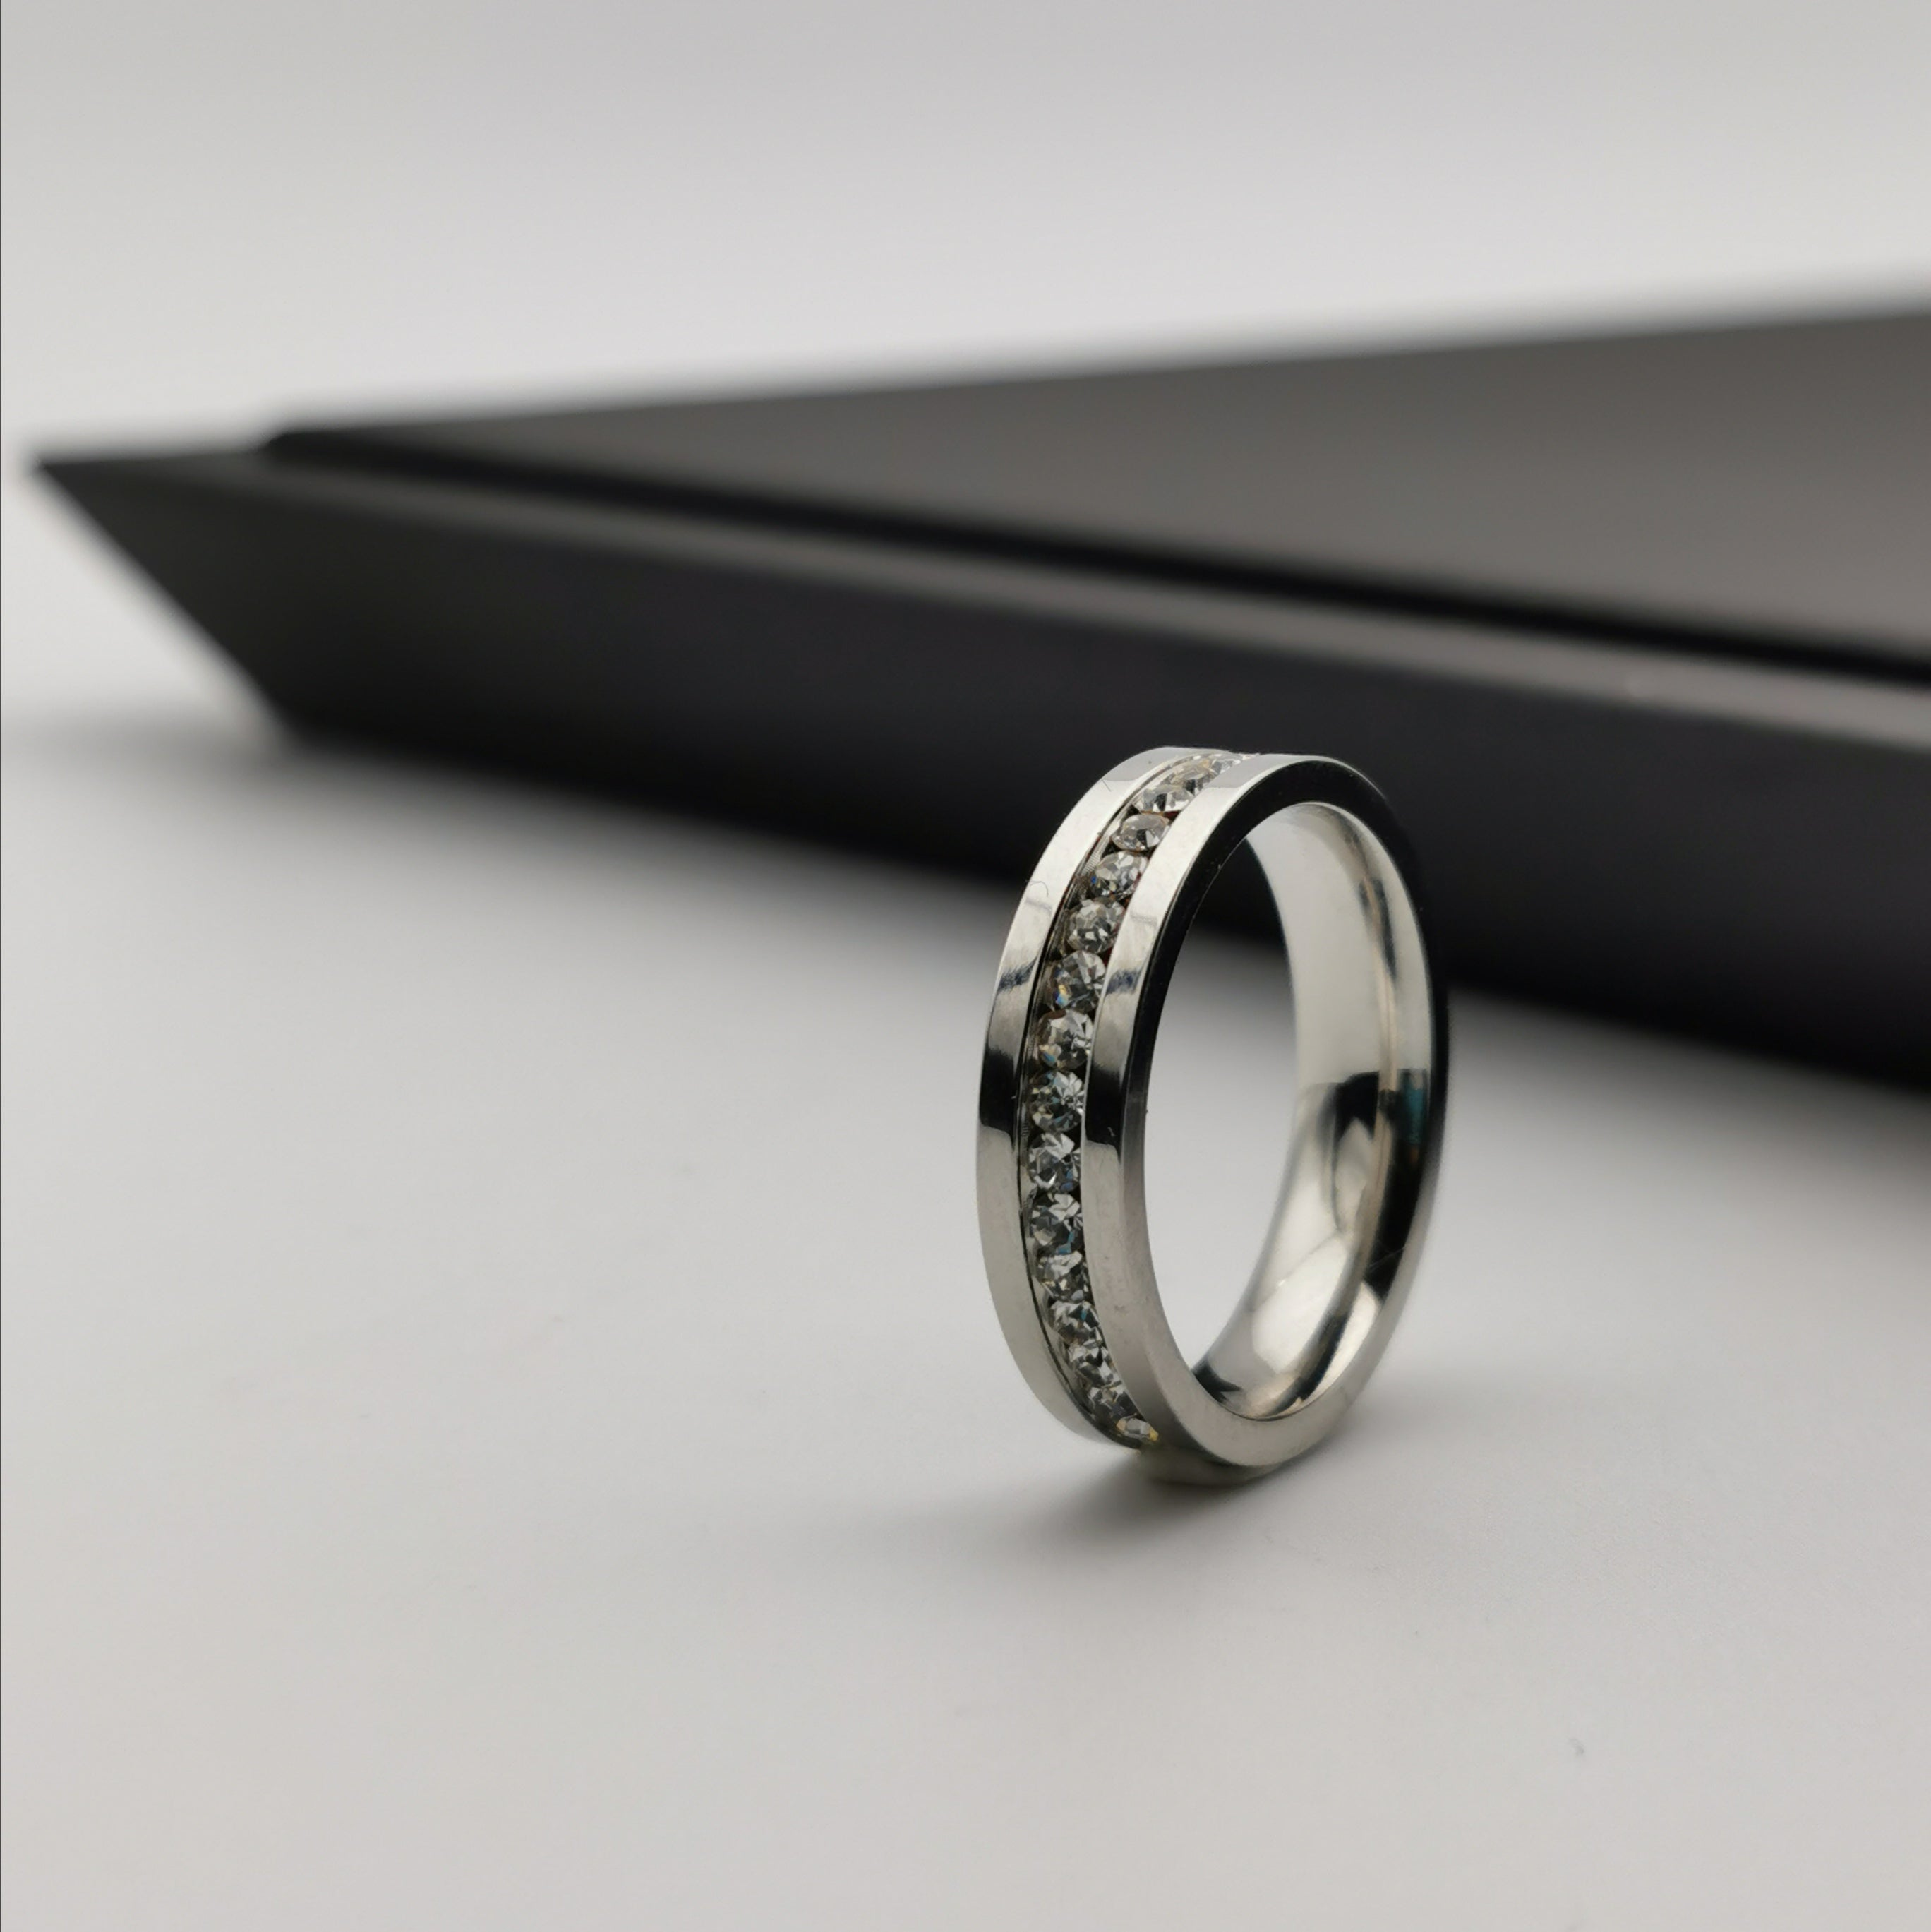 Stainless steel with cubic zirconia ring